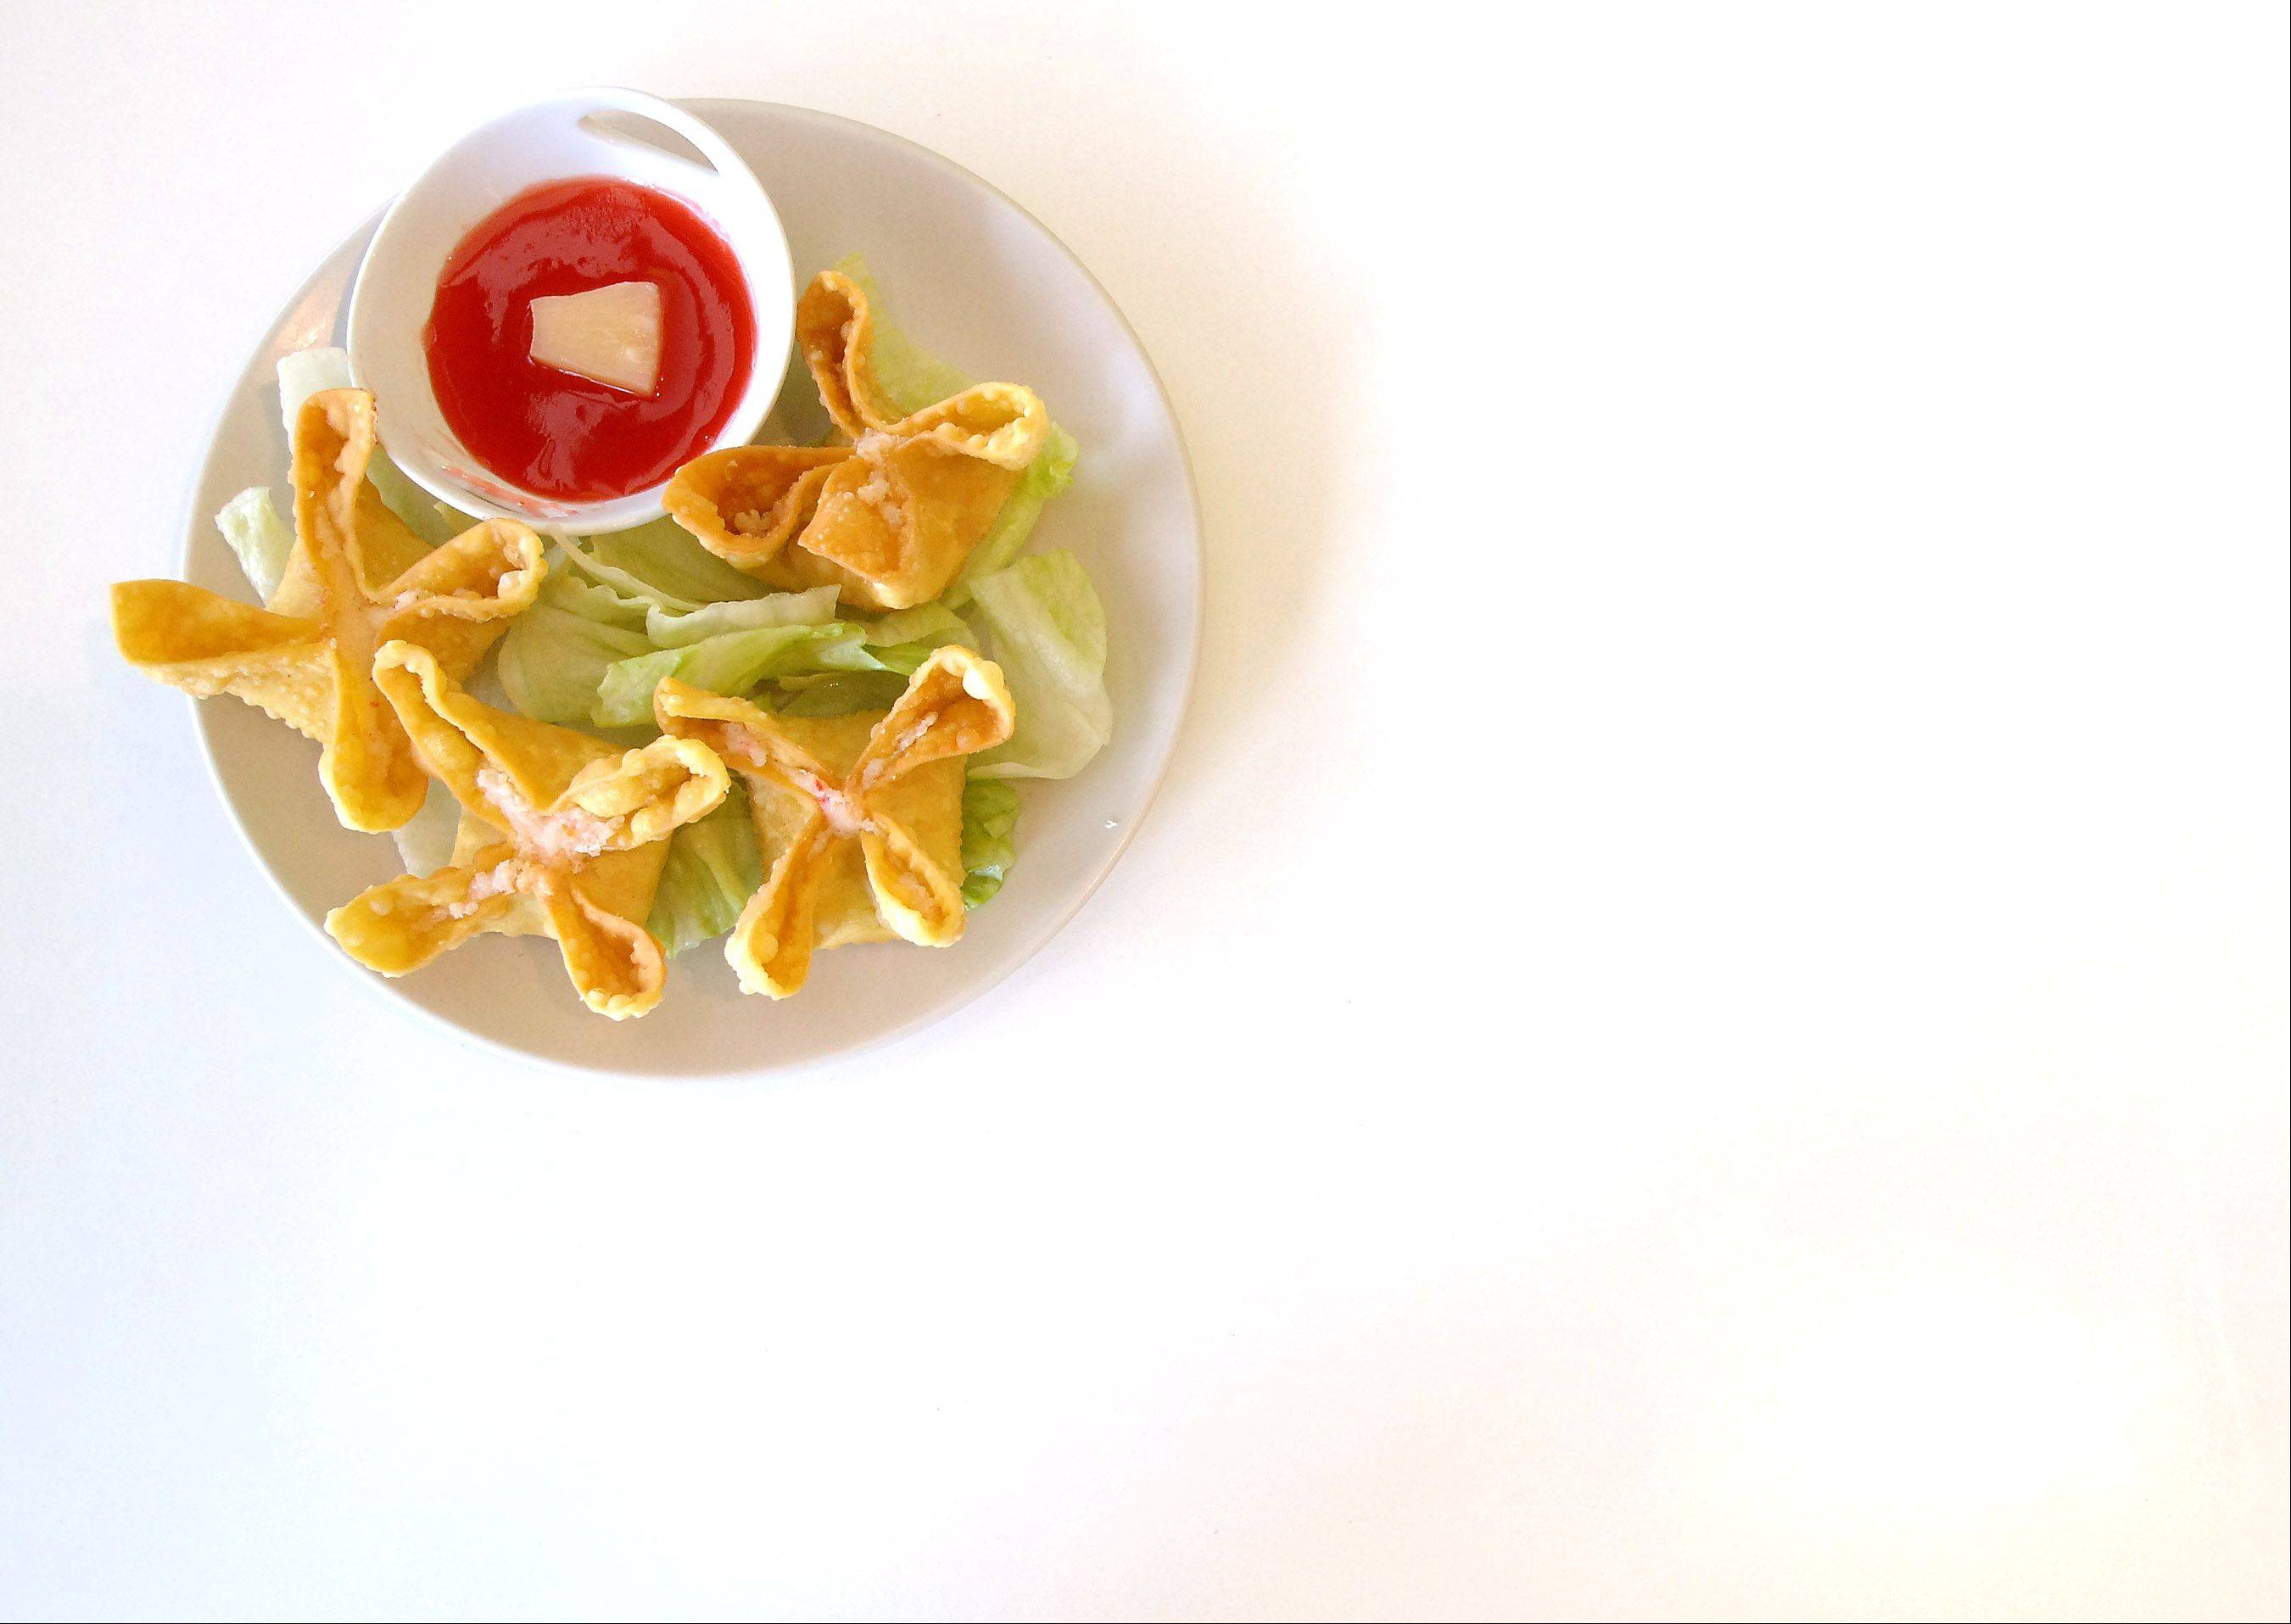 Crab rangoon is just one starter at Elgin's Little Panda.